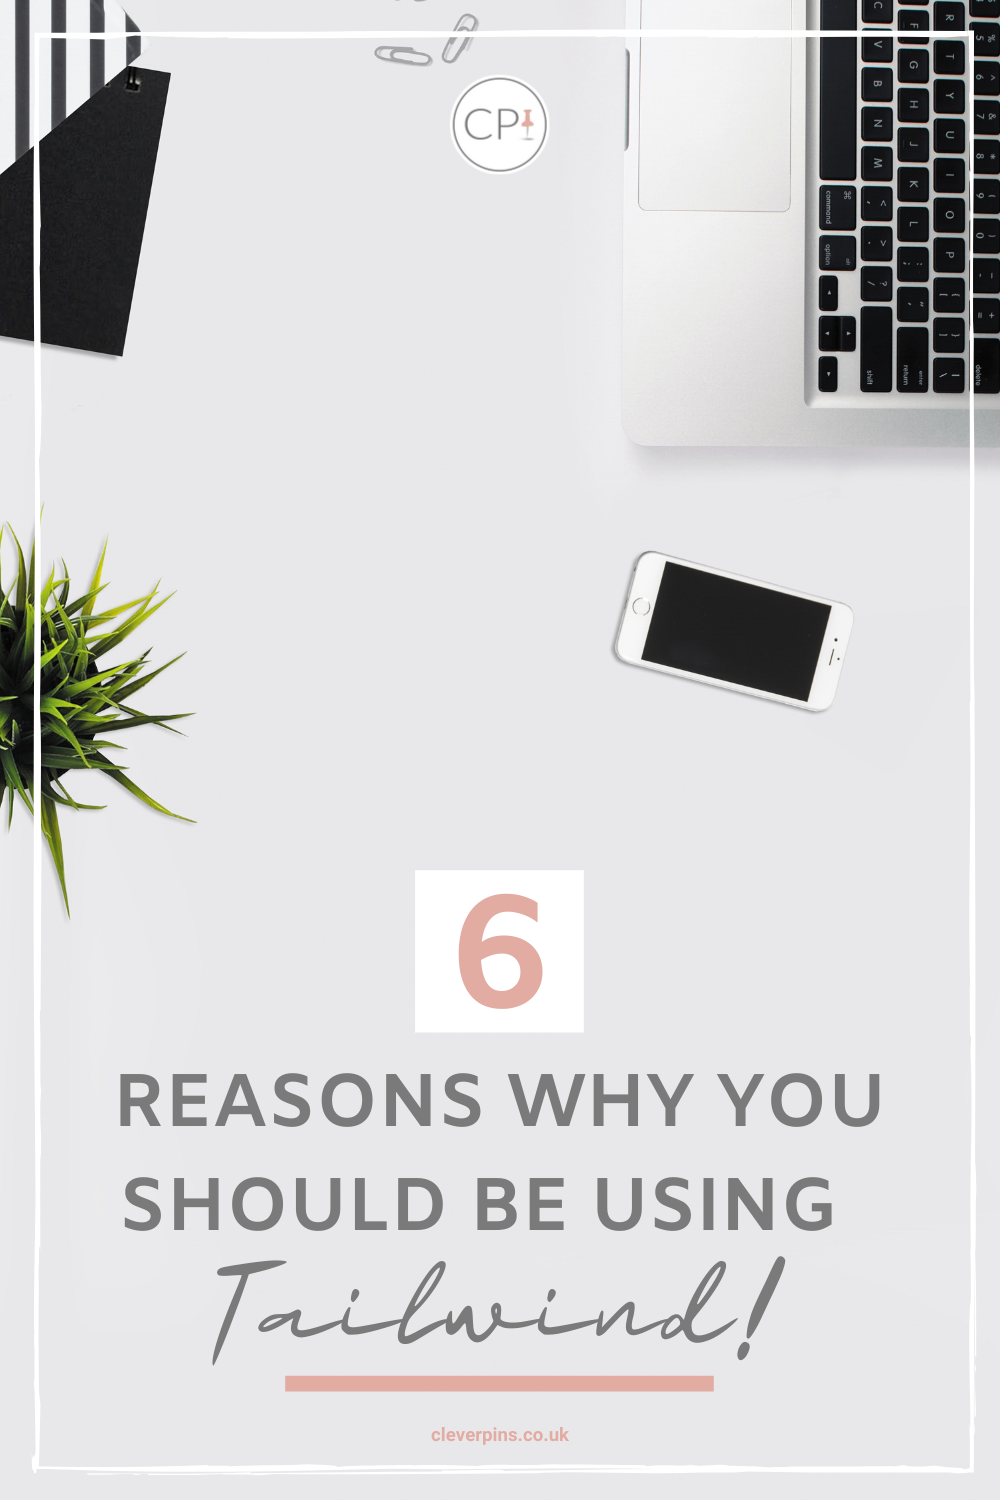 Pin template with text '6 reasons why you should be using TAilwind!'. Pin template has a flat lay of apple laptop, iphone, plant and paperclips.